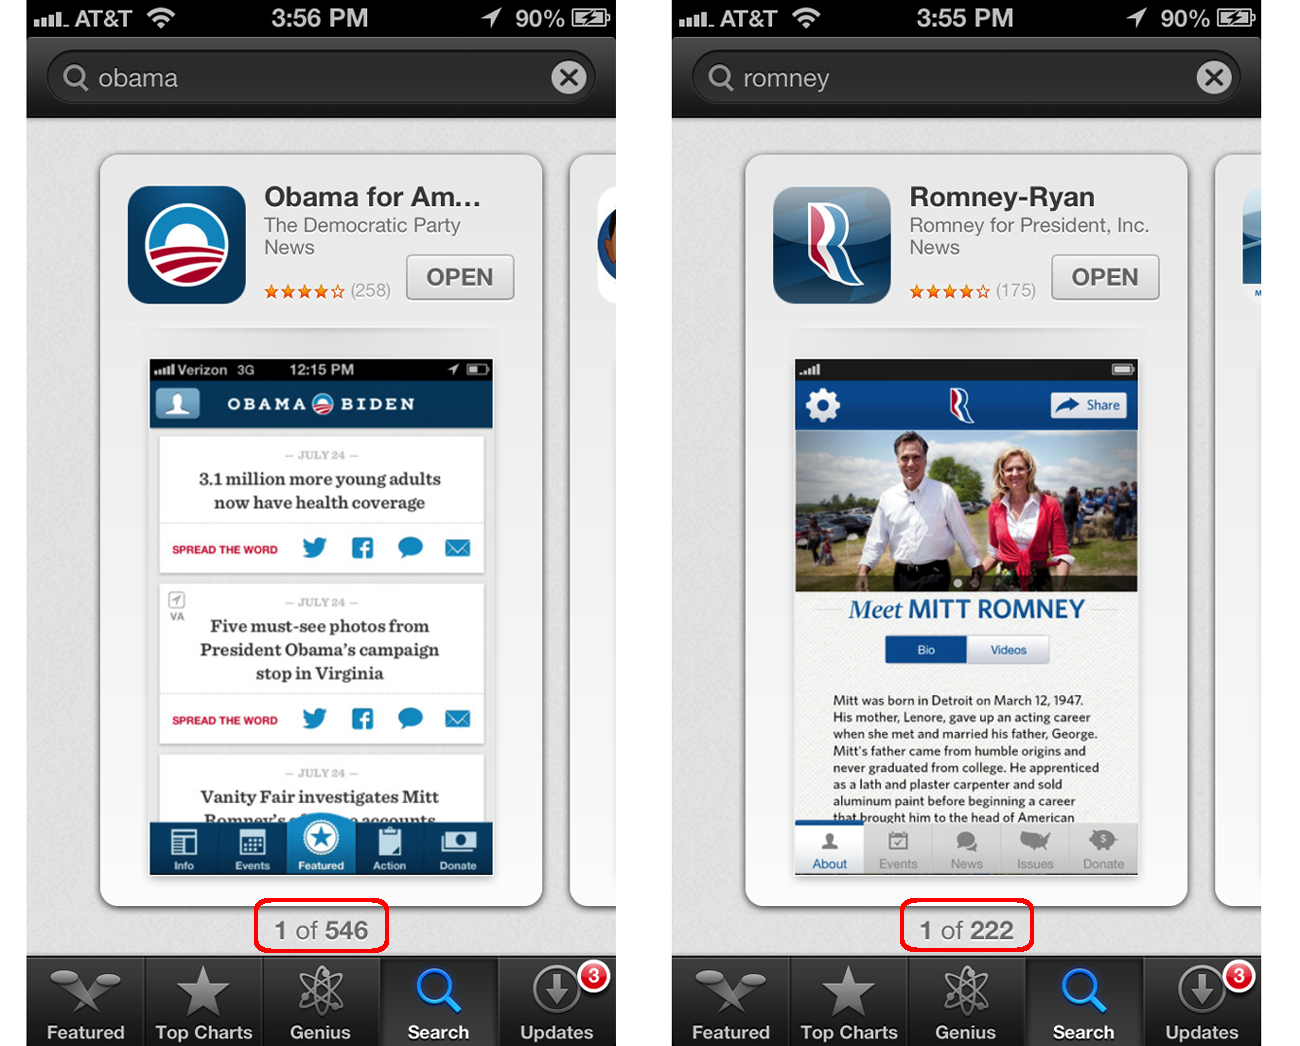 Obama vs romney iphone app comparison shoutem mobile for Picture search app for iphone